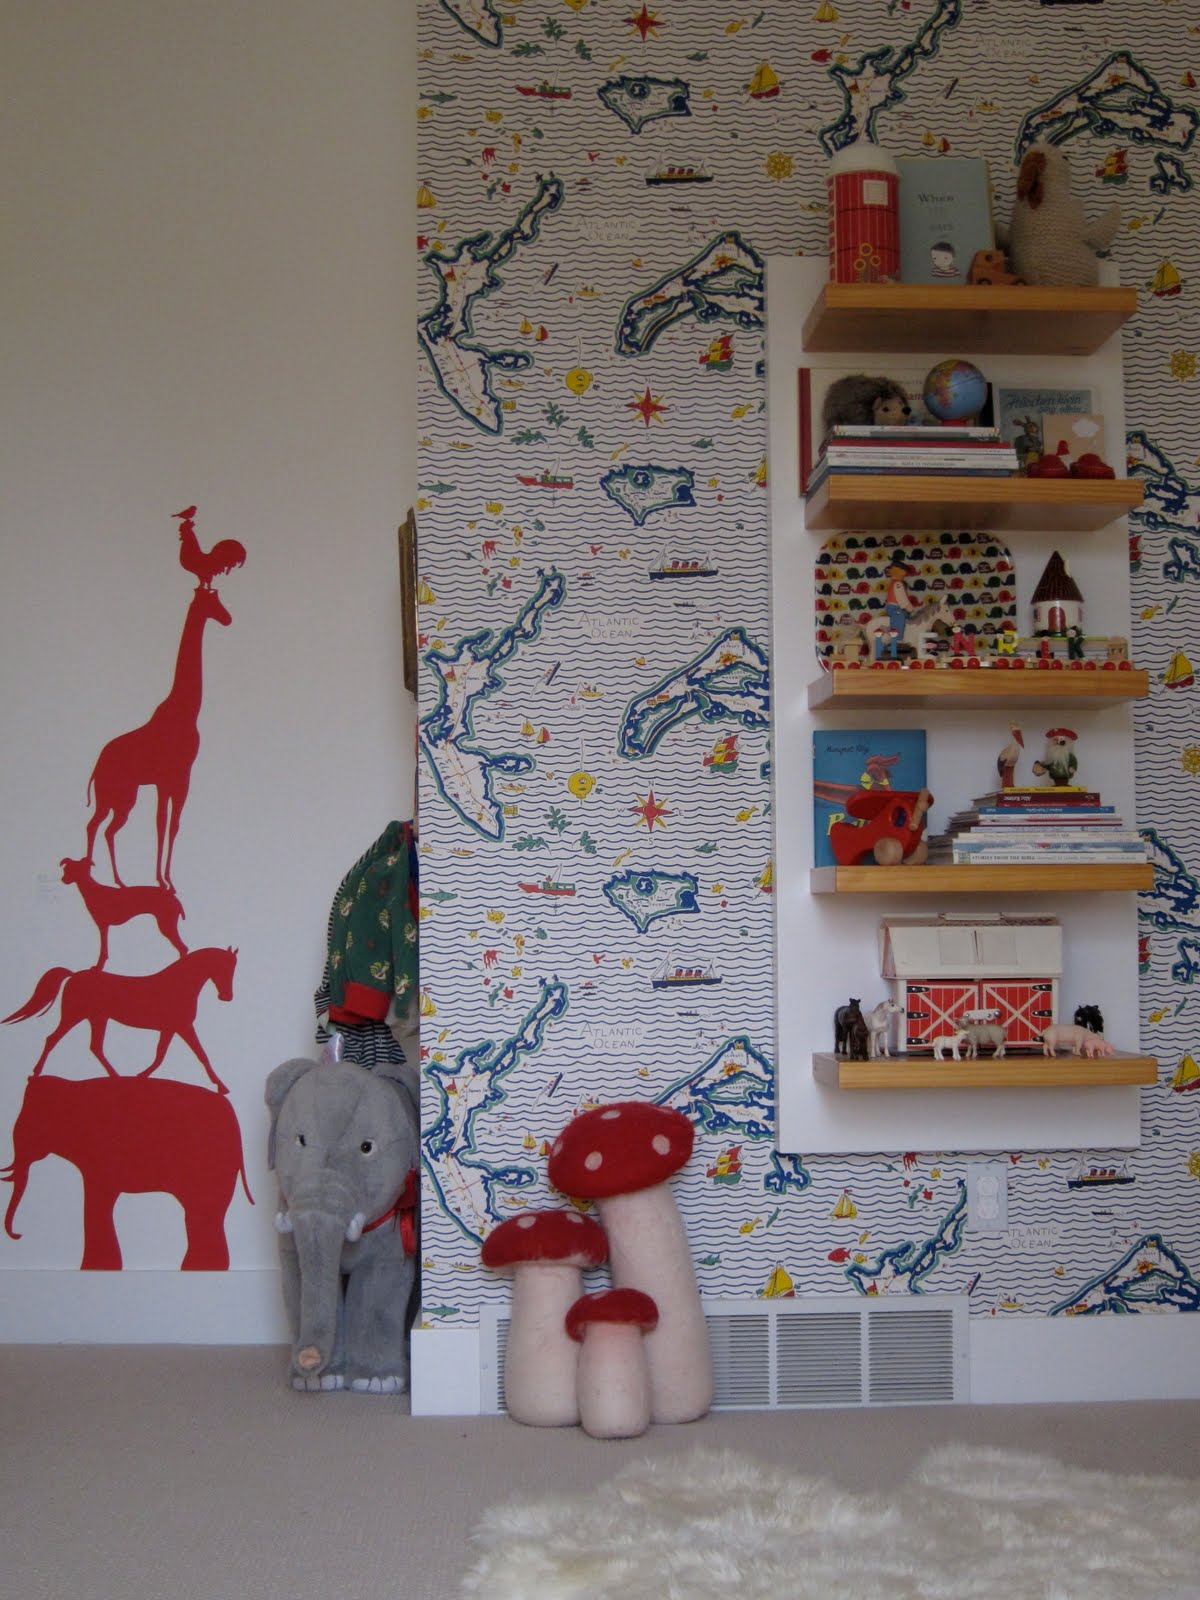 The wallpaper is Ralph Lauren, the wall sticker is animal tower from Ferm